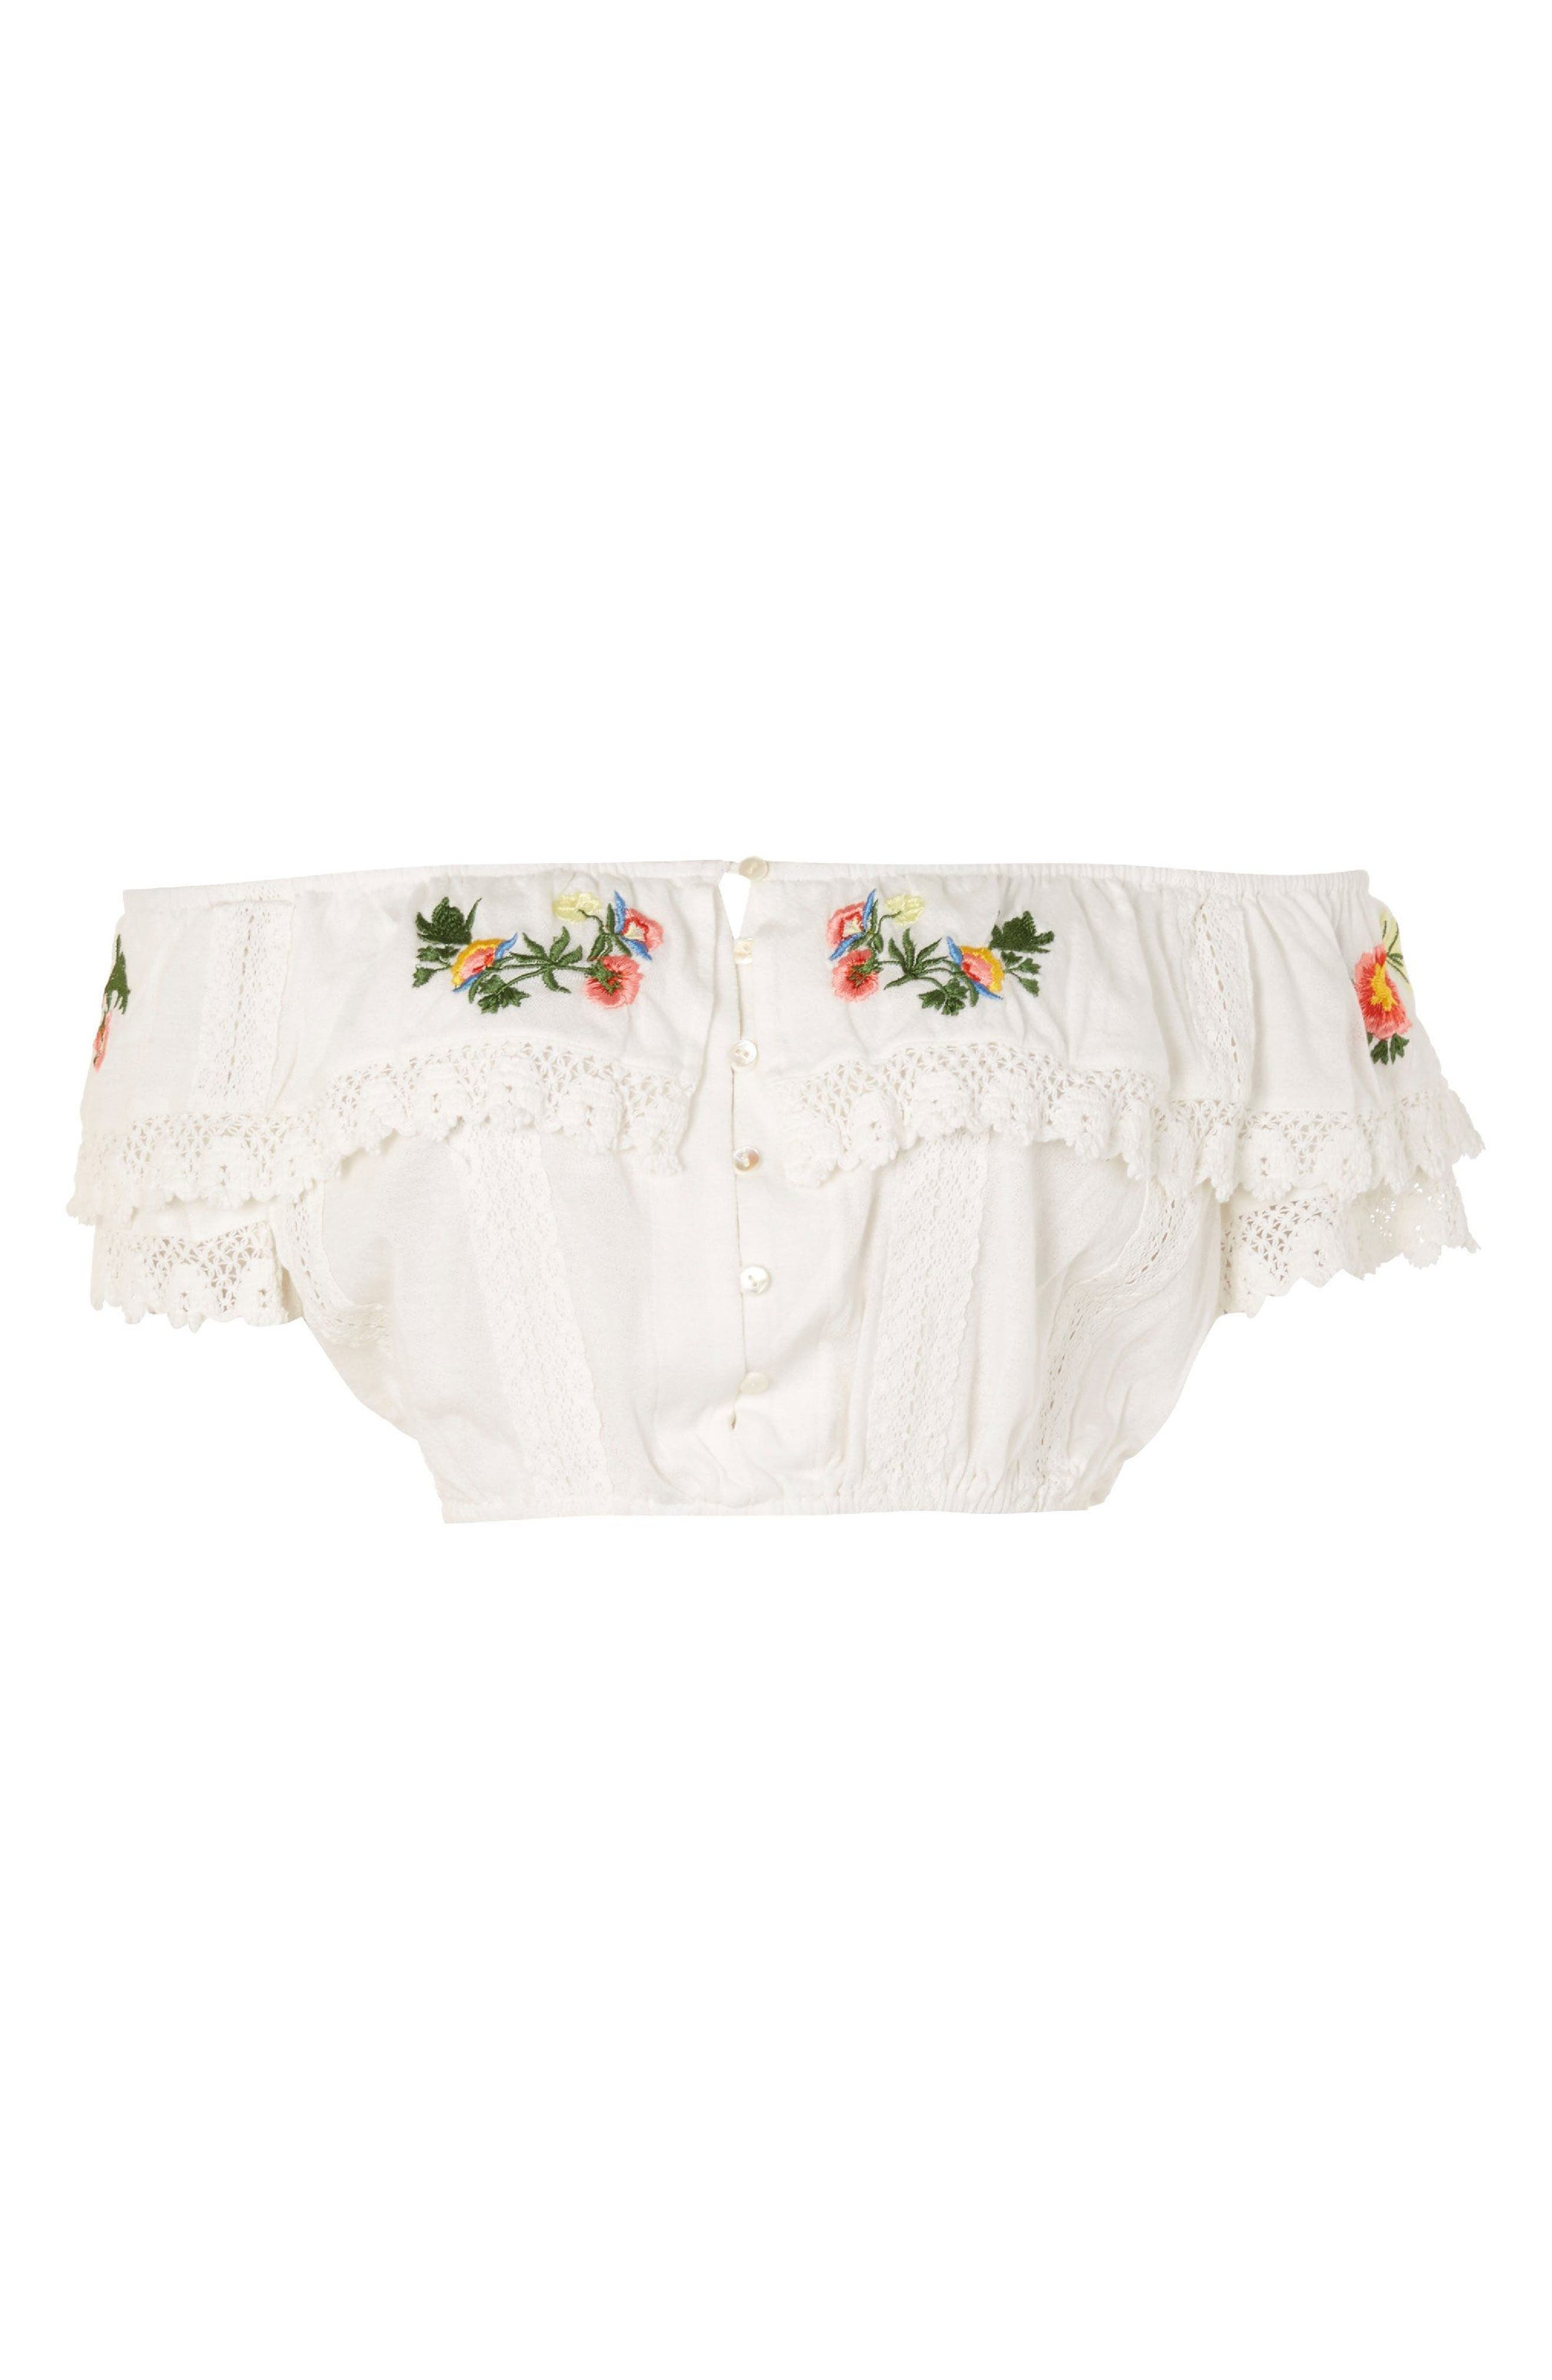 Embroidered Lace Bardot Top,                             Alternate thumbnail 4, color,                             White Multi